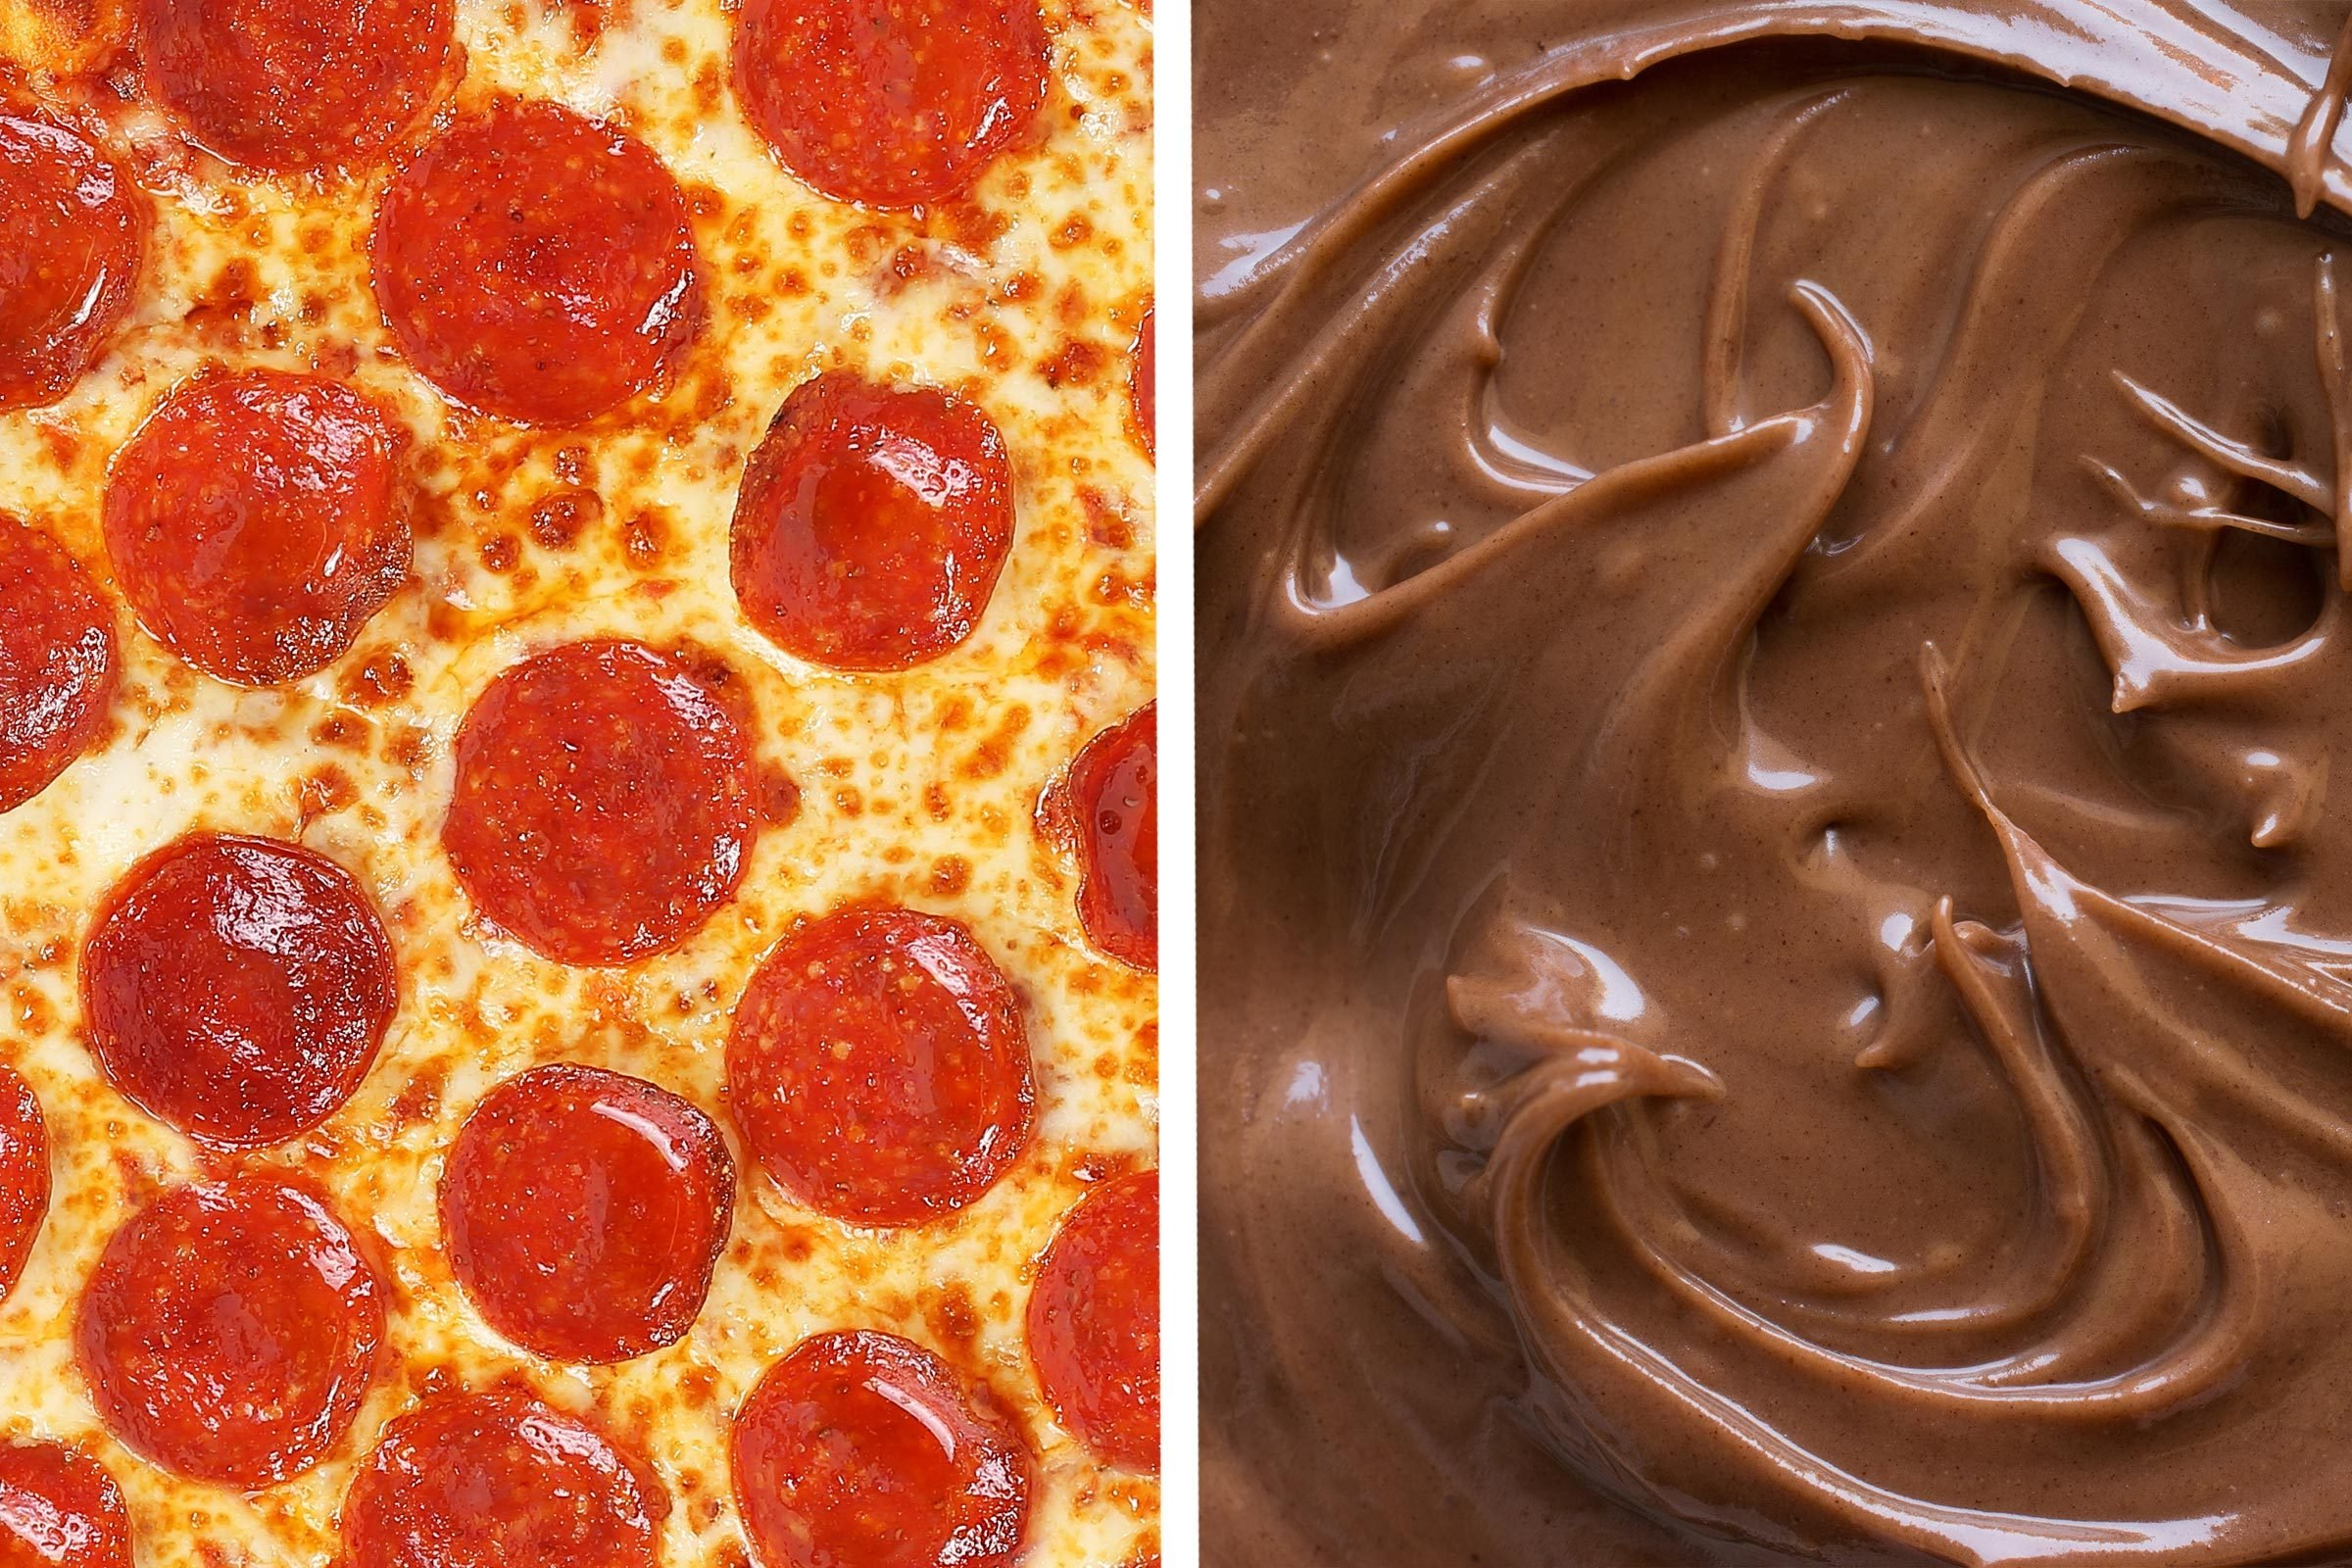 Nutella Weird Food Combinations 7